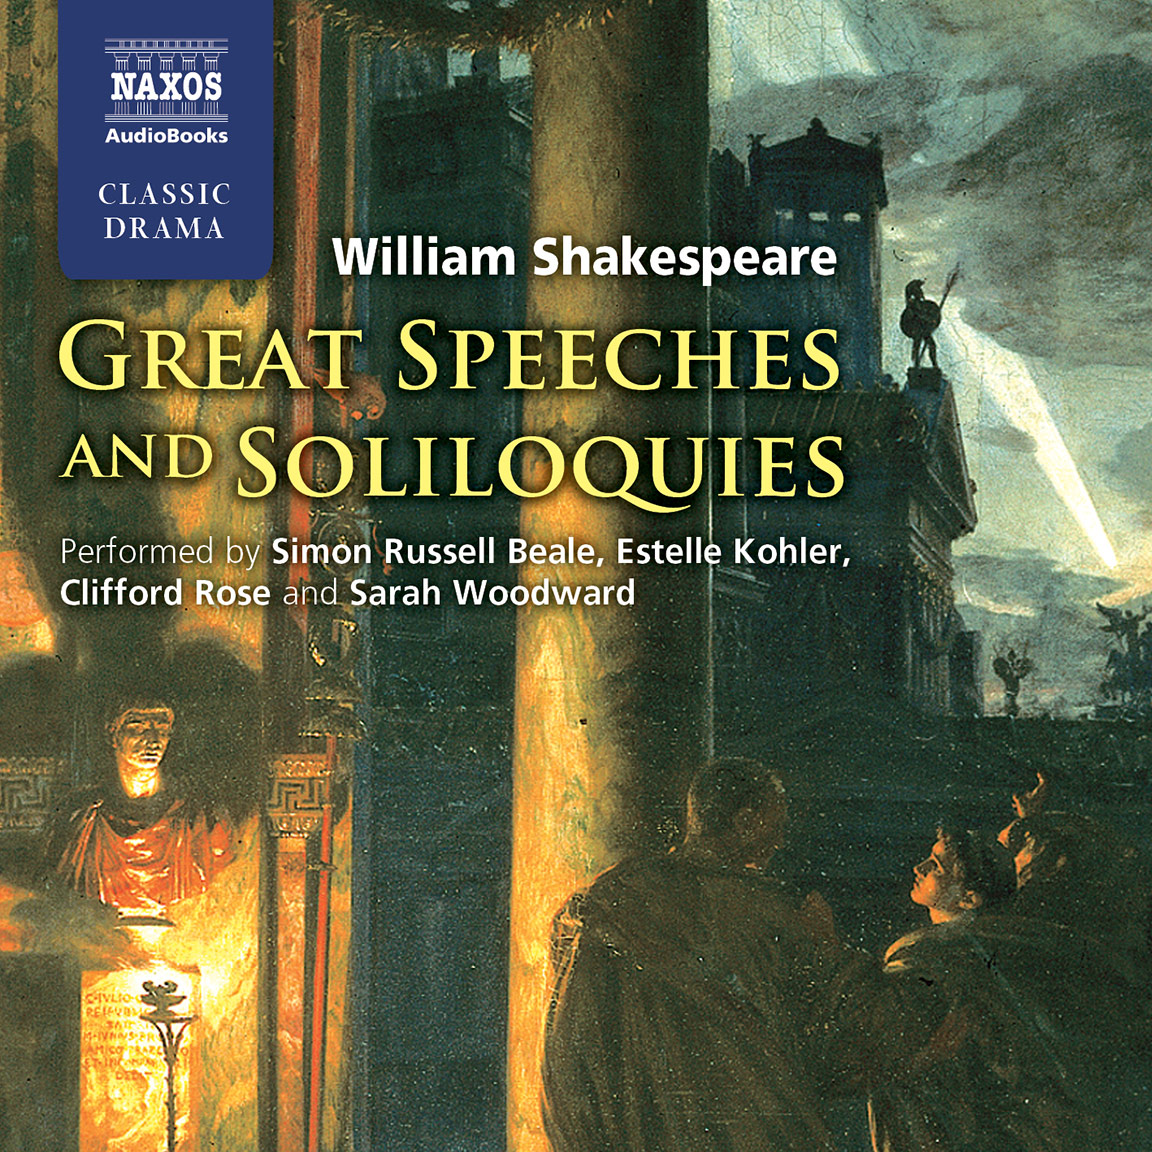 Great Speeches & Soliloquies of Shakespeare (selections)